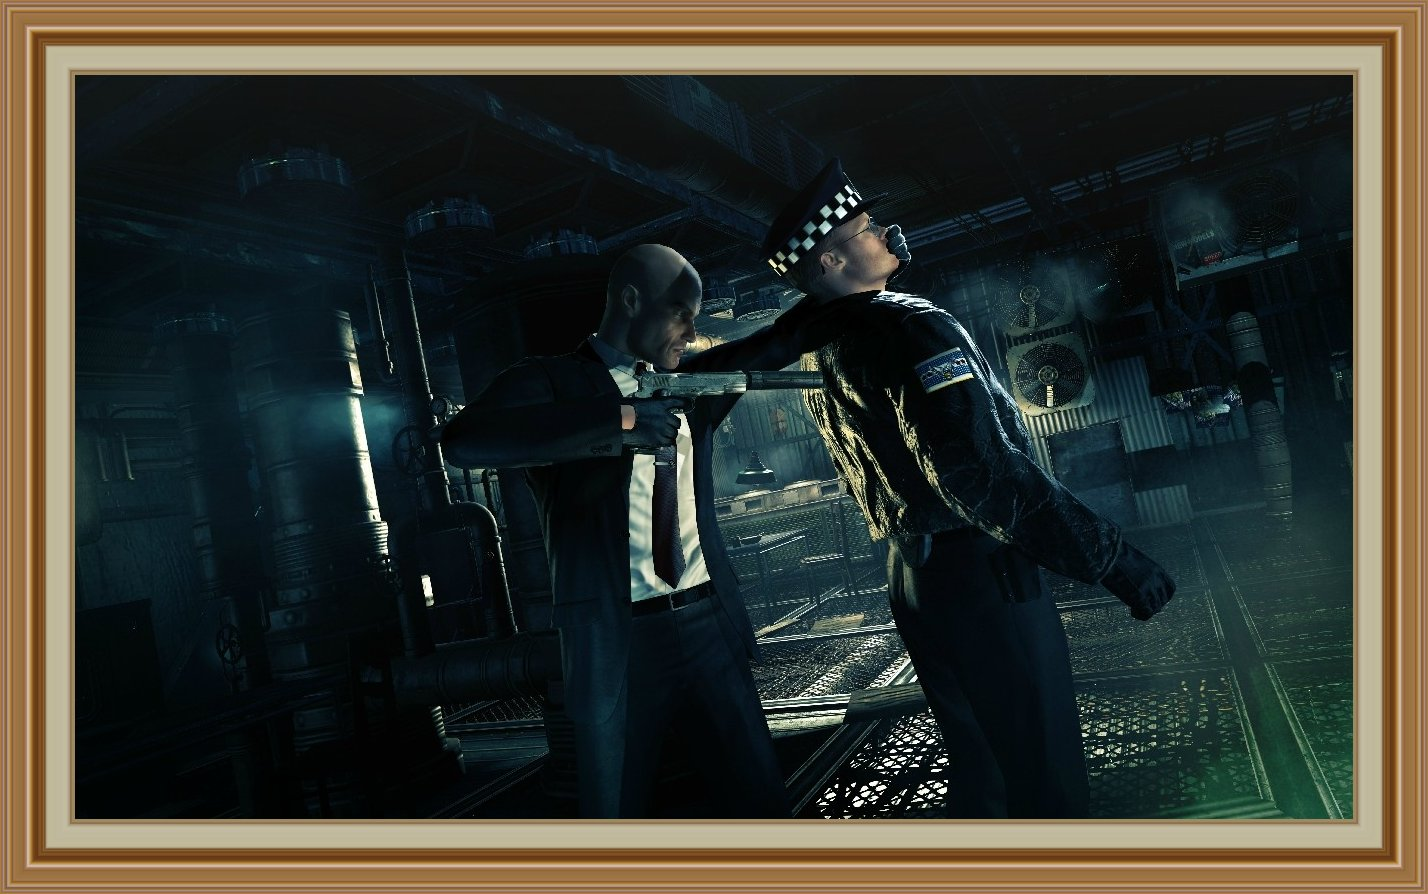 Hitman 5 Absolution PC Game Screenshot 2 By Farhankayani.Blogspot.com